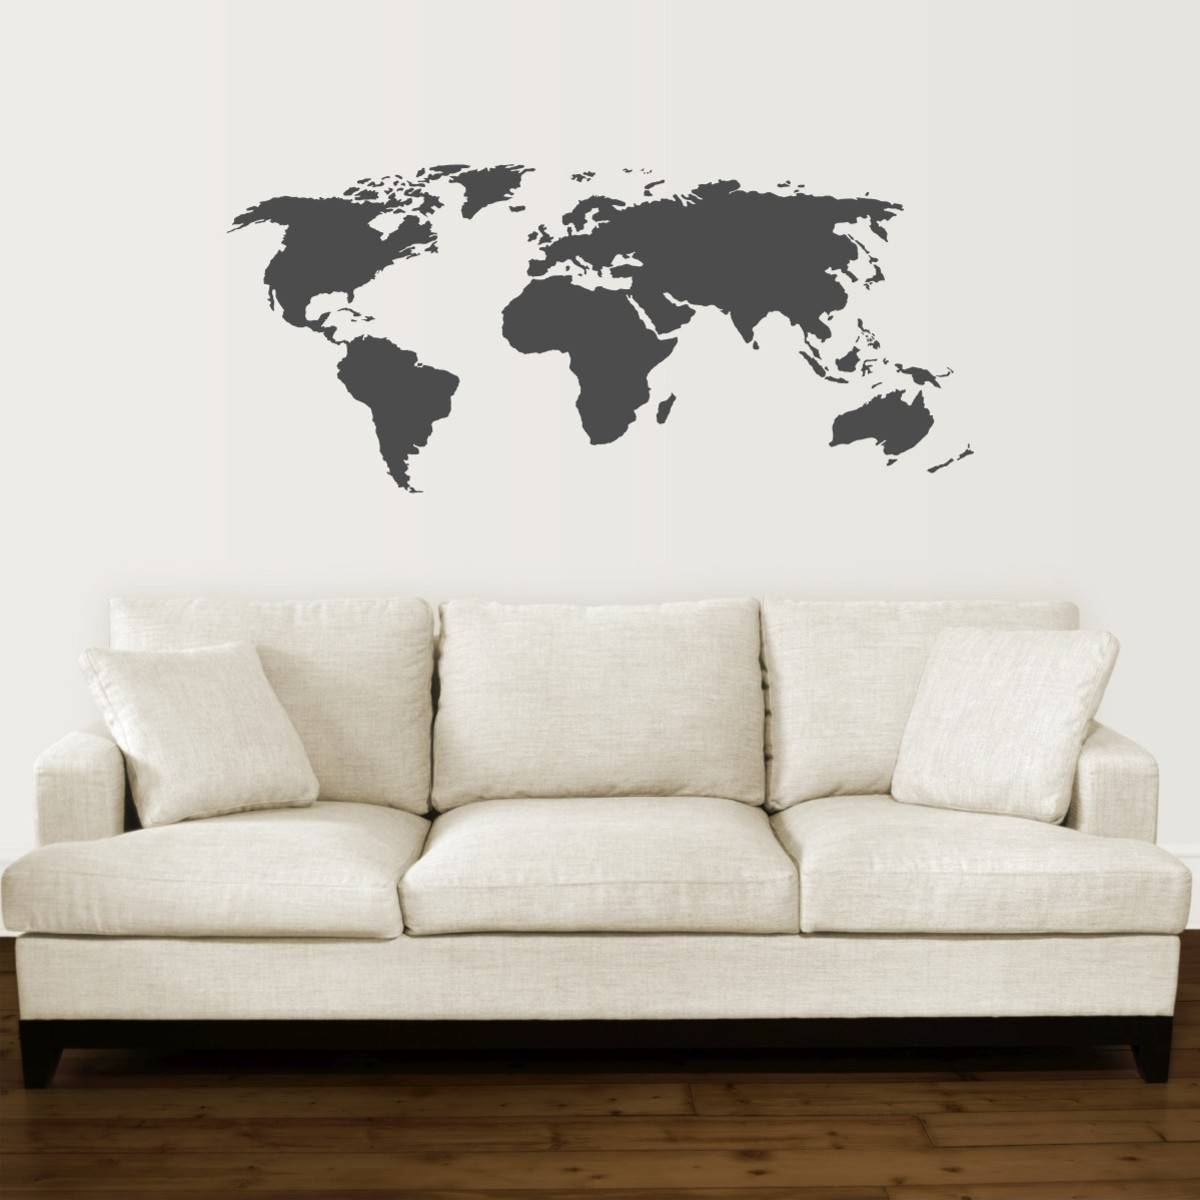 World Map Wall Quotes™ Wall Art Decal | Wallquotes Intended For 2017 Framed Map Wall Art (View 7 of 20)